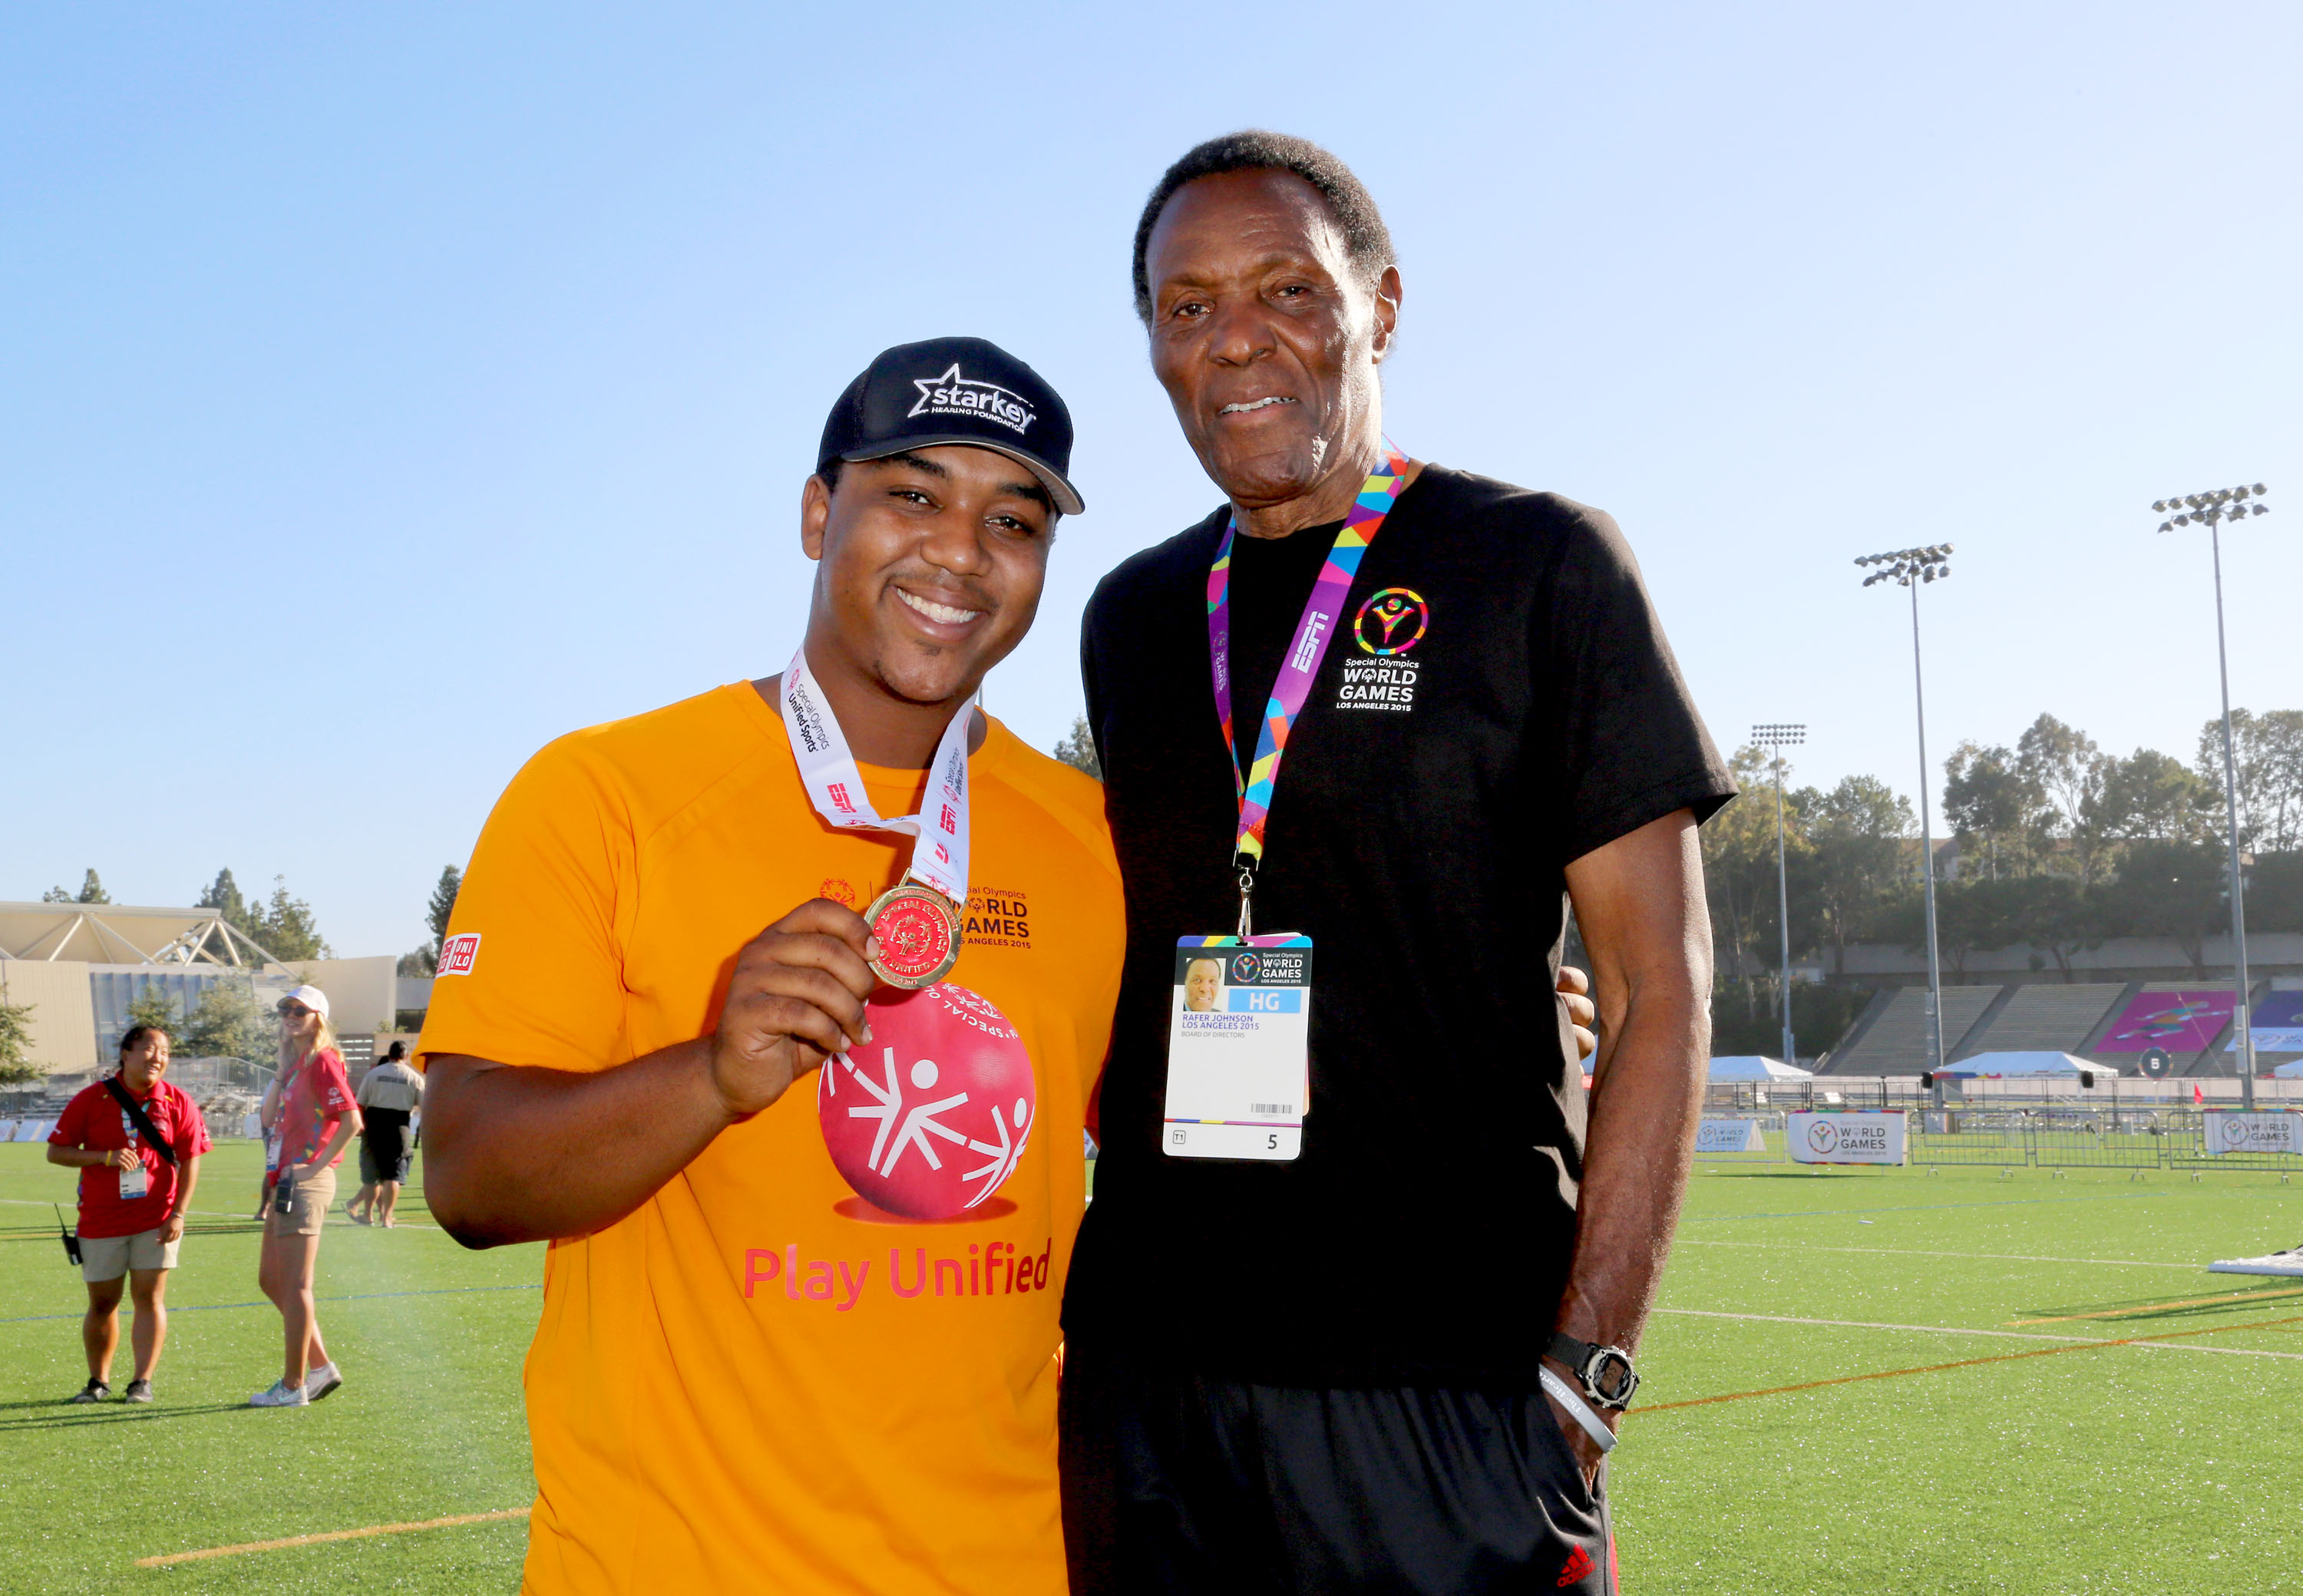 Starkey Hearing Foundation Ambassadors Kyle And Chris Massey Participate In The Special Olympics Unified Sports Experience Football Game